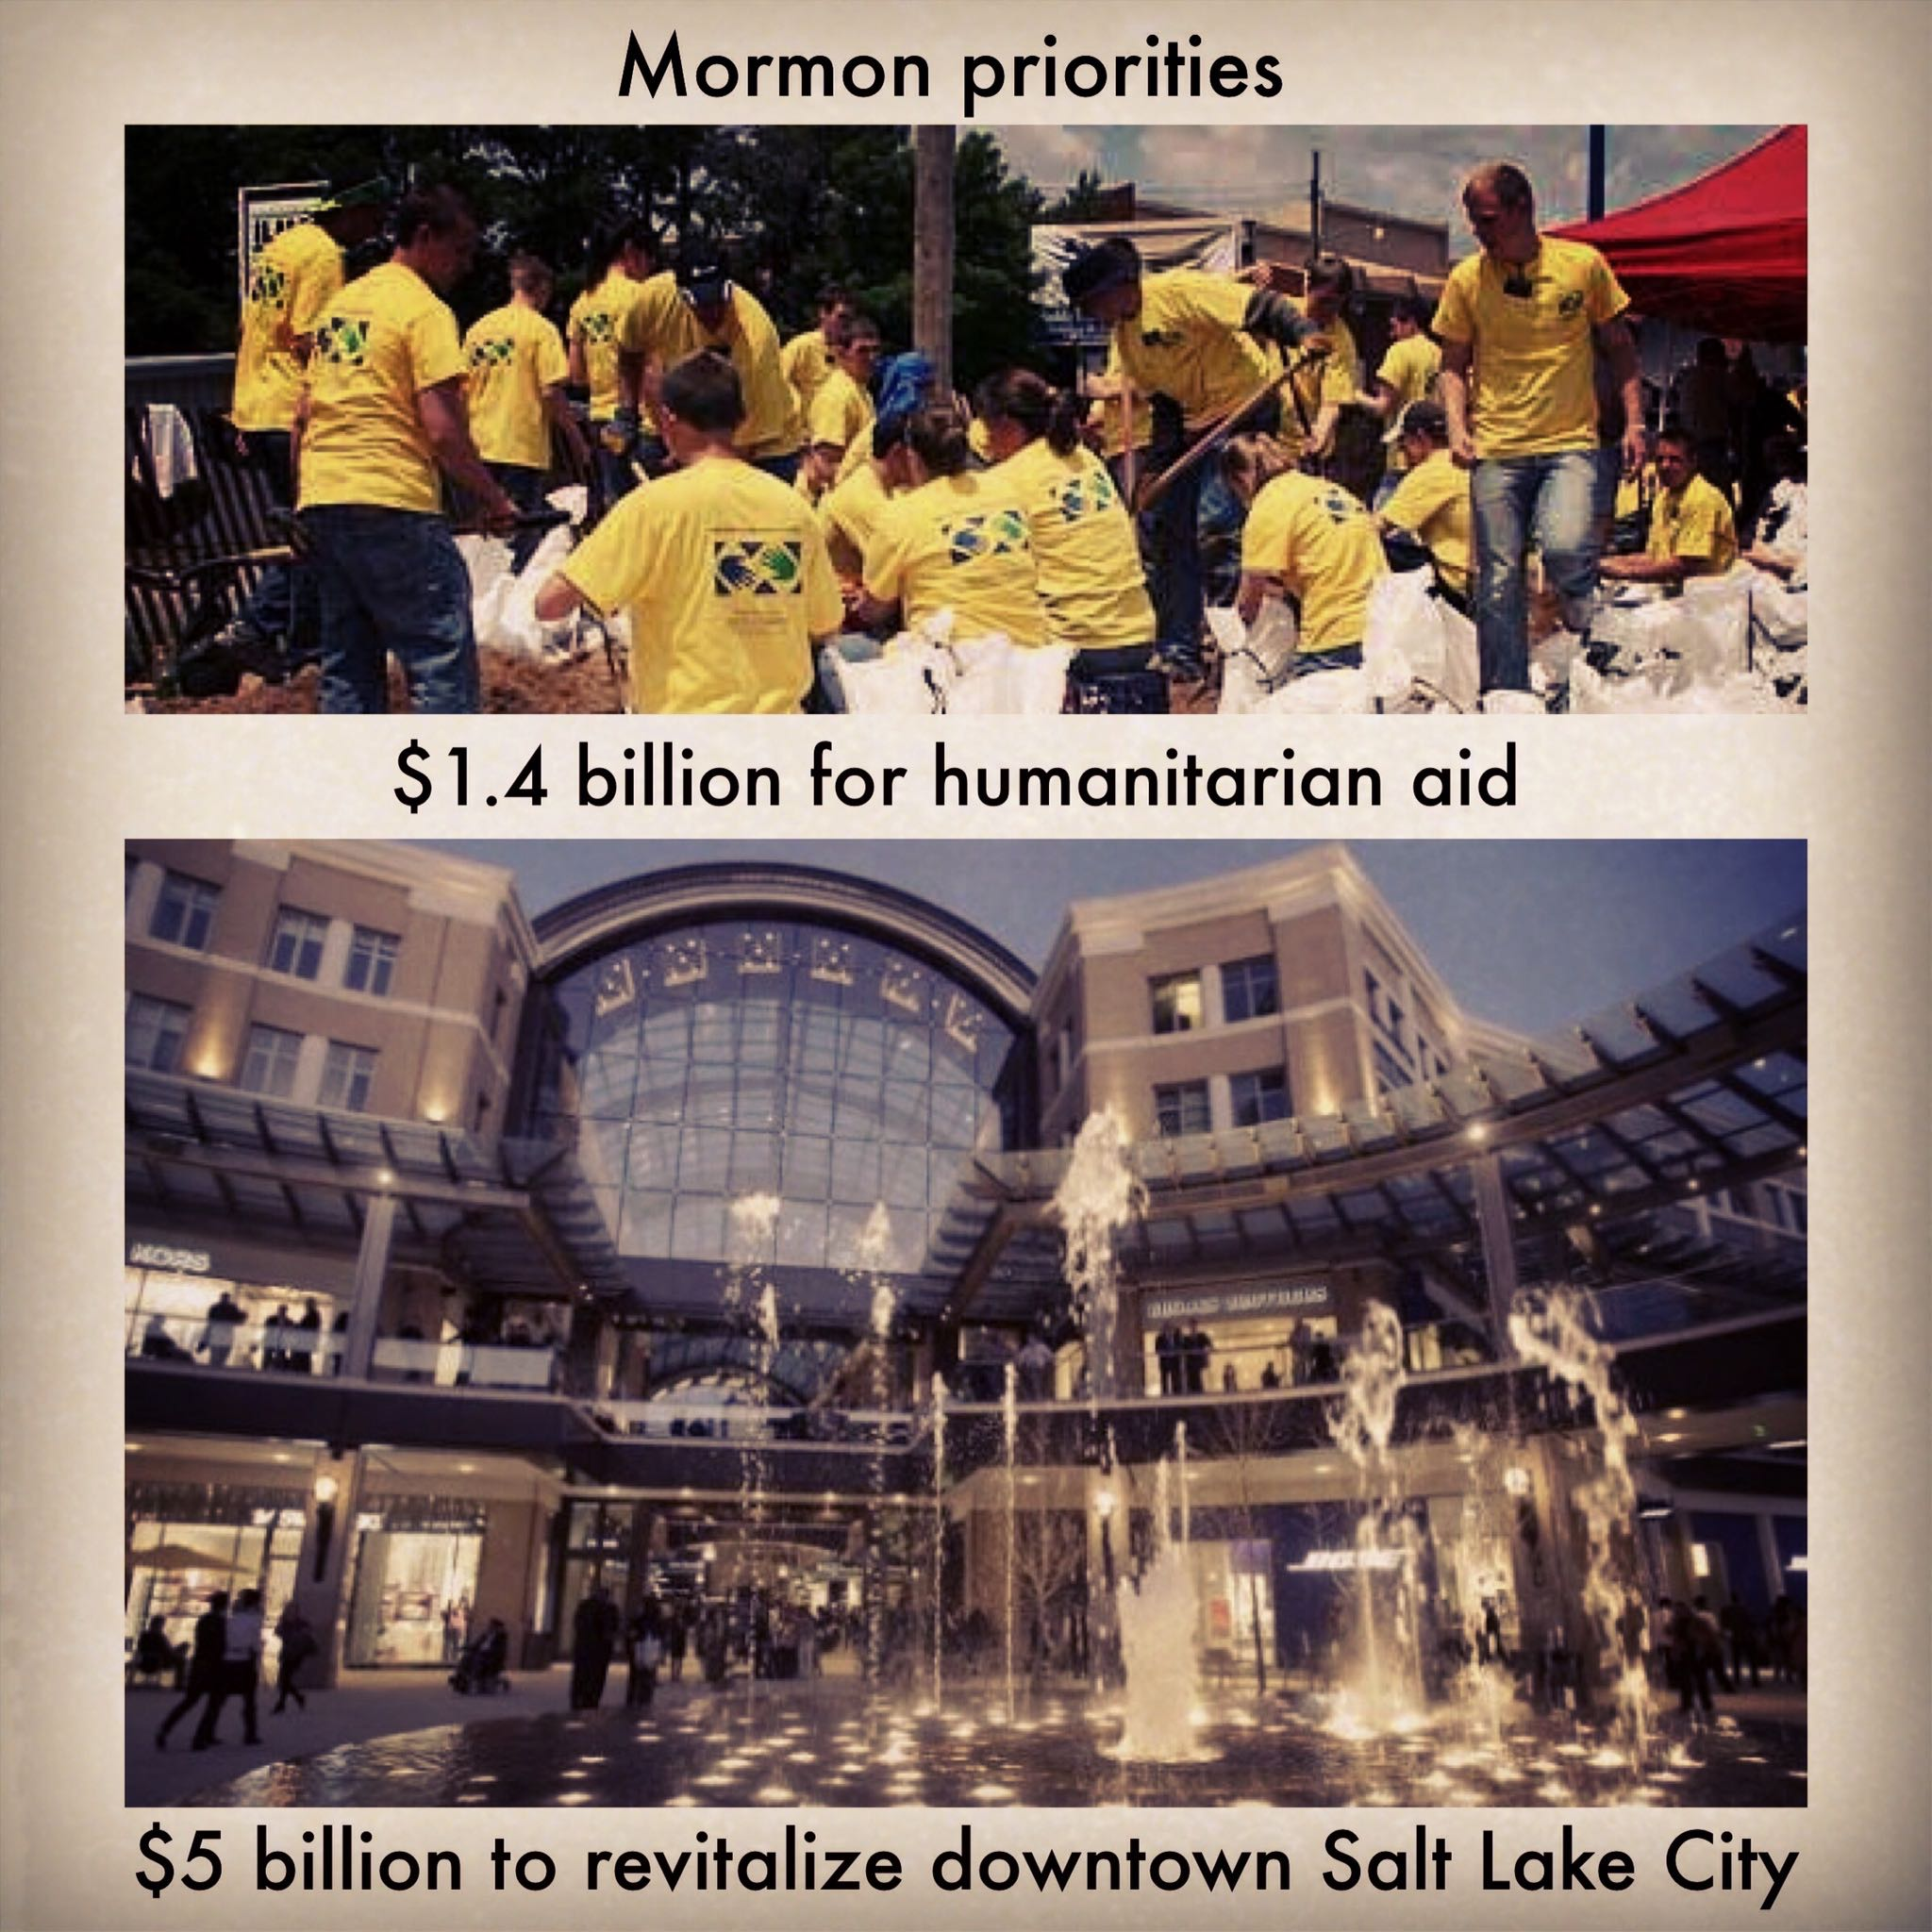 Mormon priorities